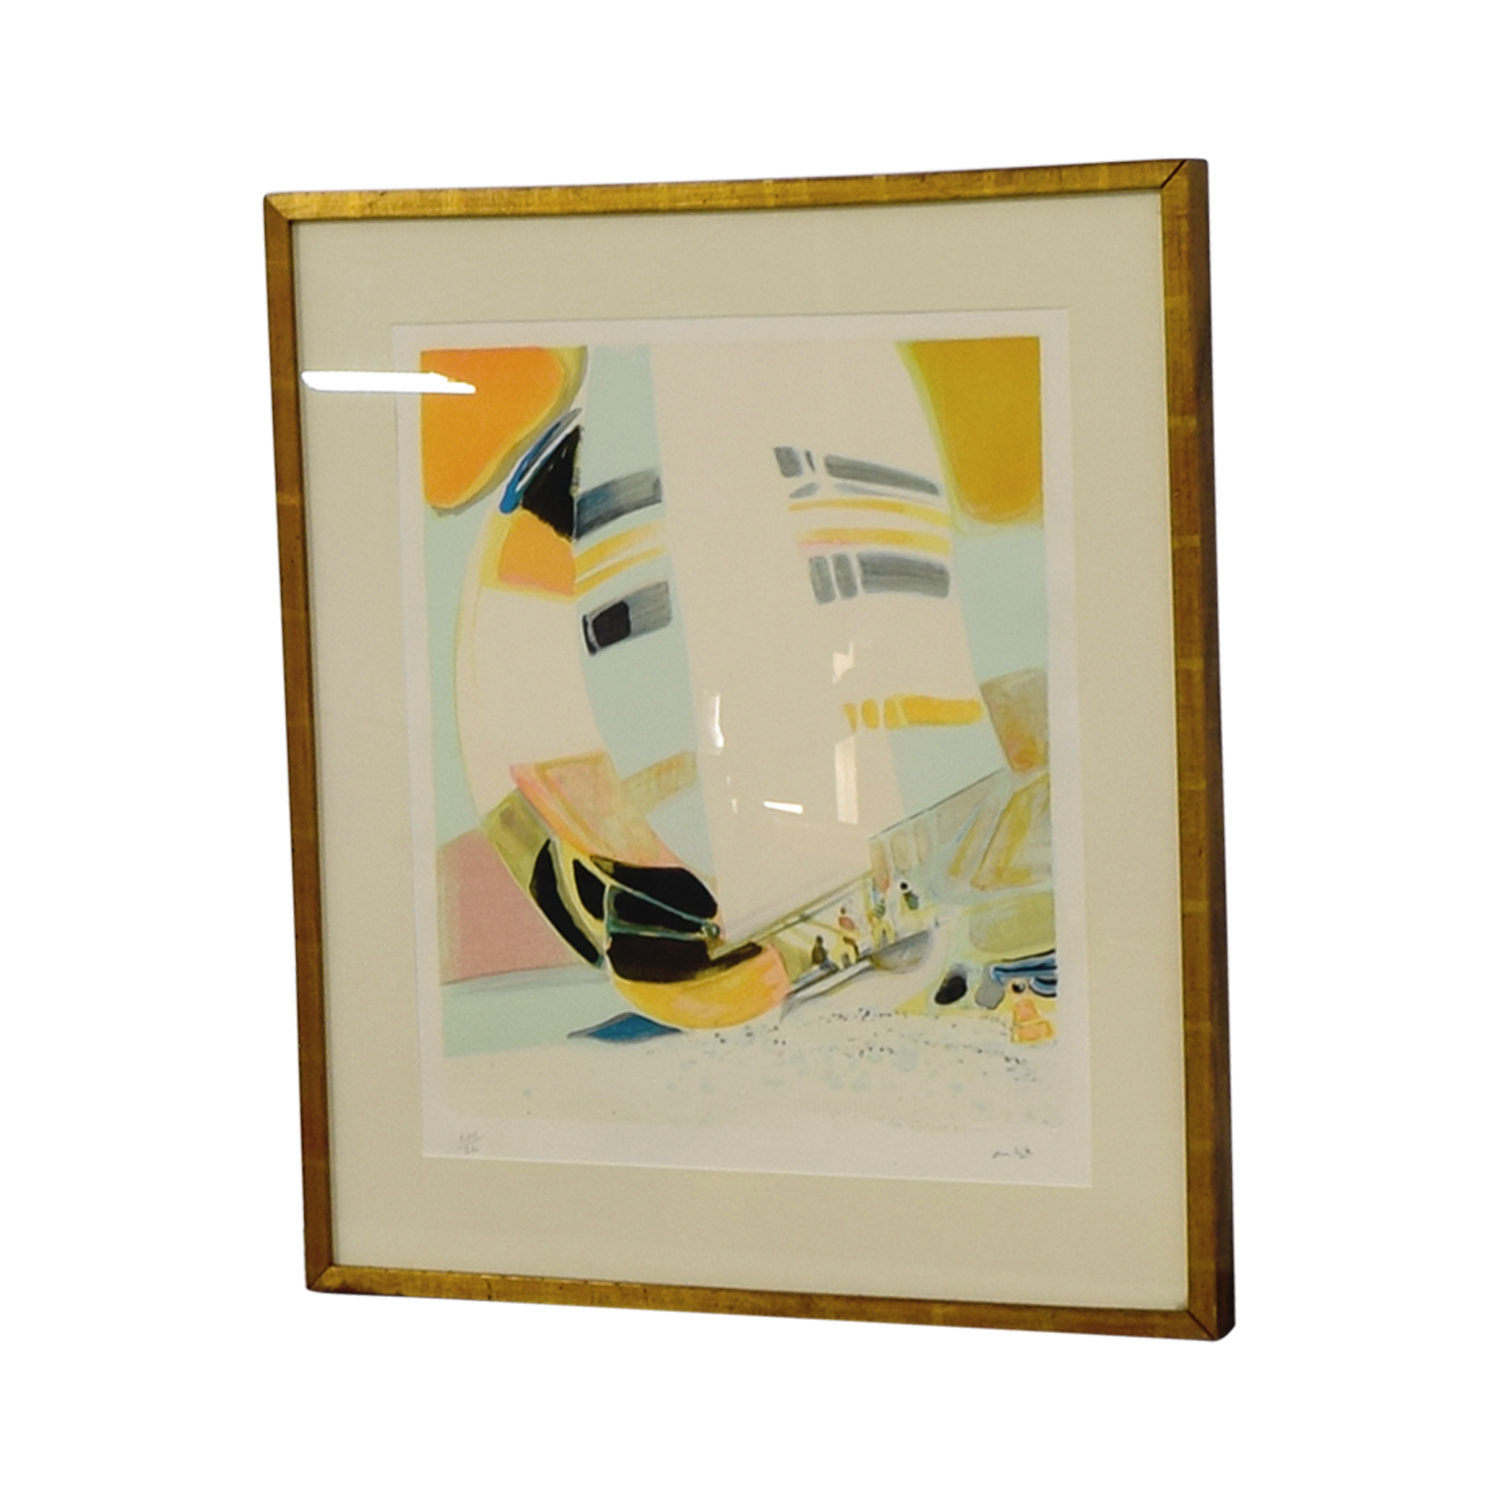 Framed Amhil Sailboat Lithograph dimensions